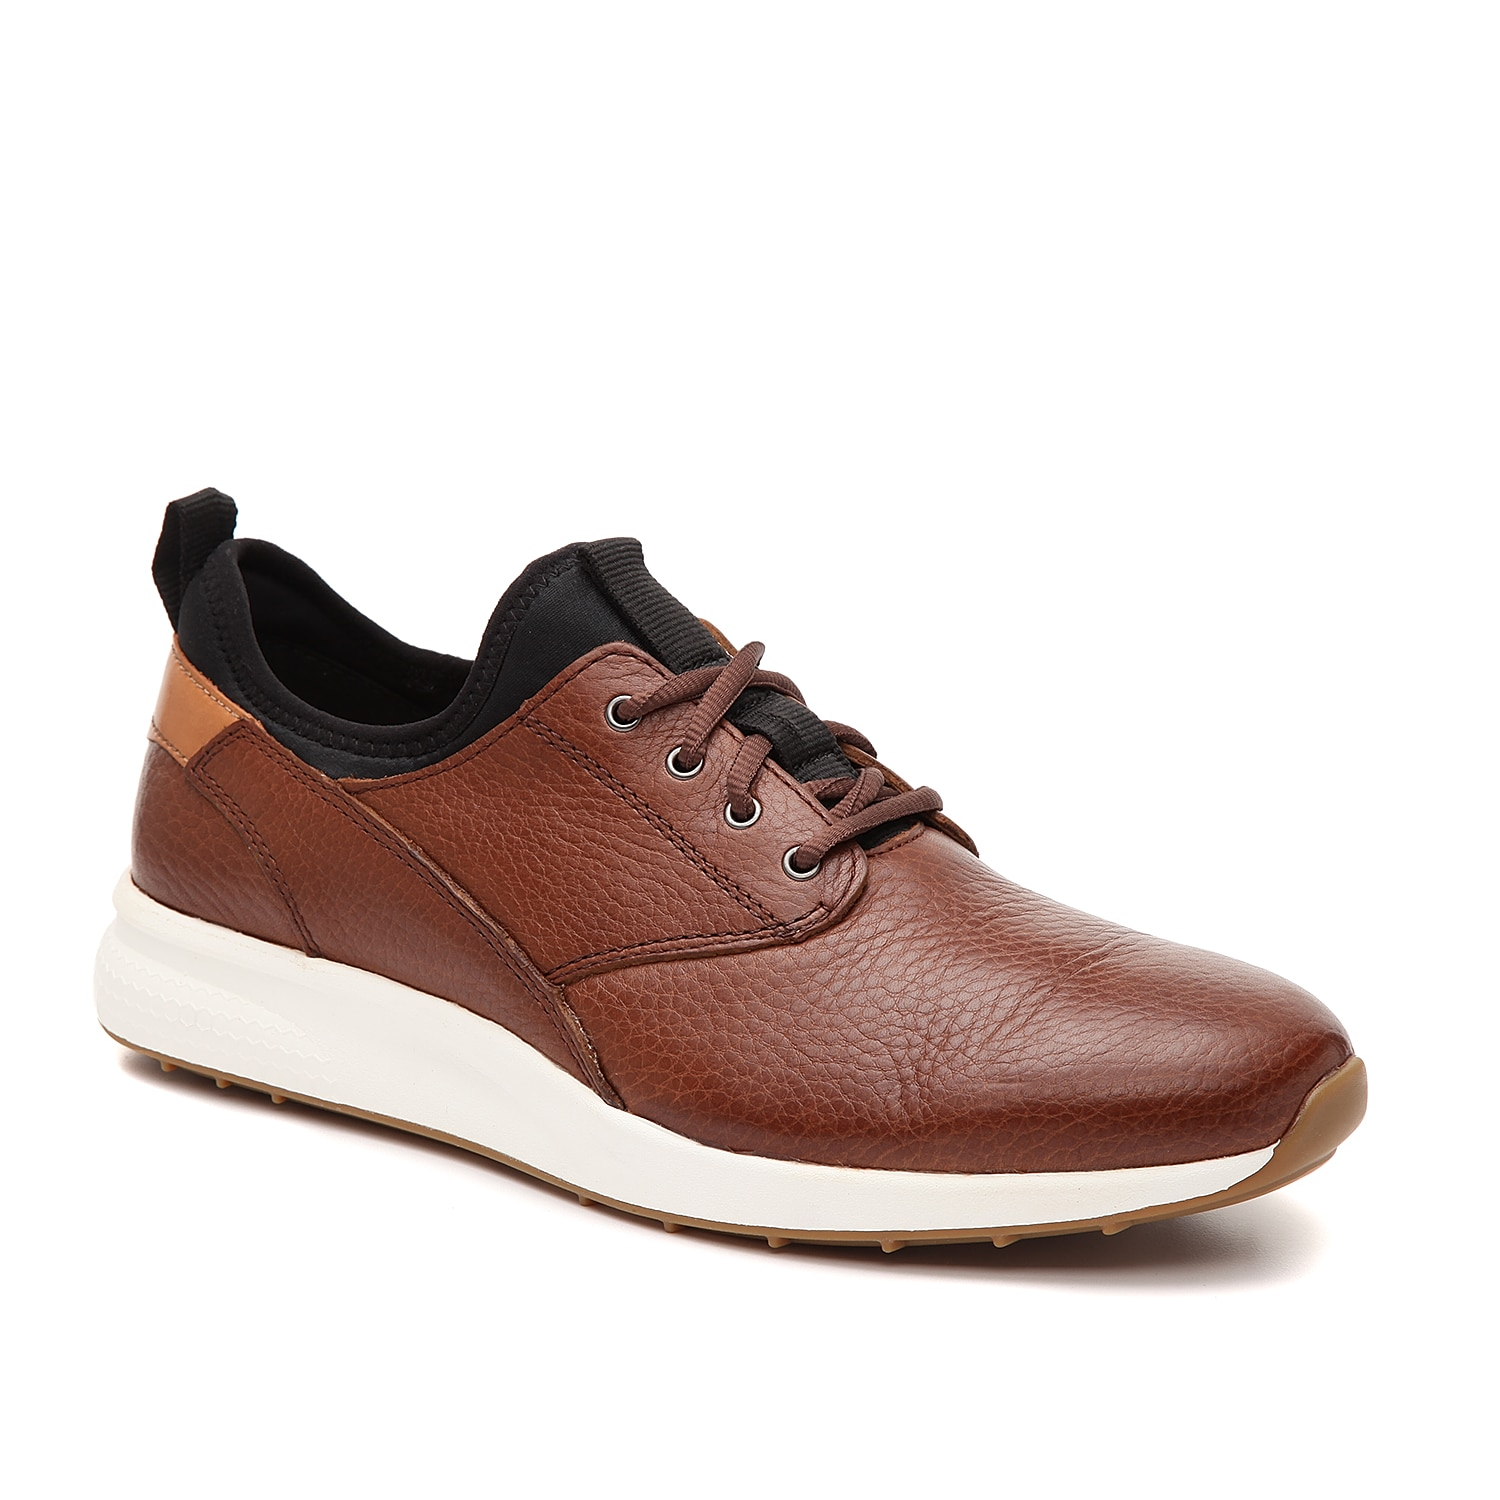 Pair the Keating sneaker from Johnston & Murphy with any of your casual to dressy outfits. This low-top pair features a pebbled, leather upper and a nylon lining that will easily match with your rotating wardrobe.